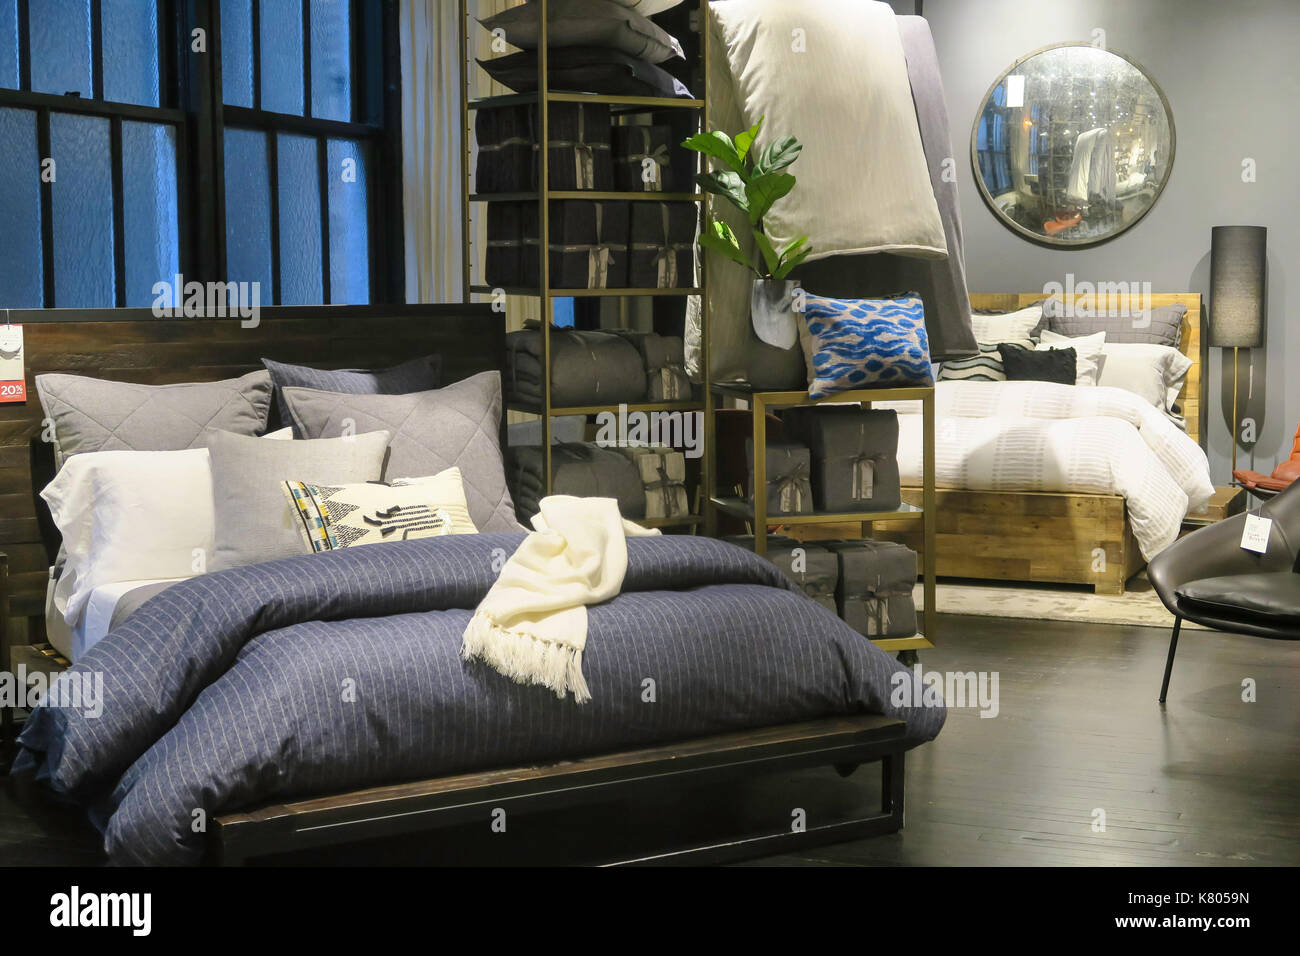 Bedroom Display Furniture Store Stock Photos Bedroom Home Decorators Catalog Best Ideas of Home Decor and Design [homedecoratorscatalog.us]